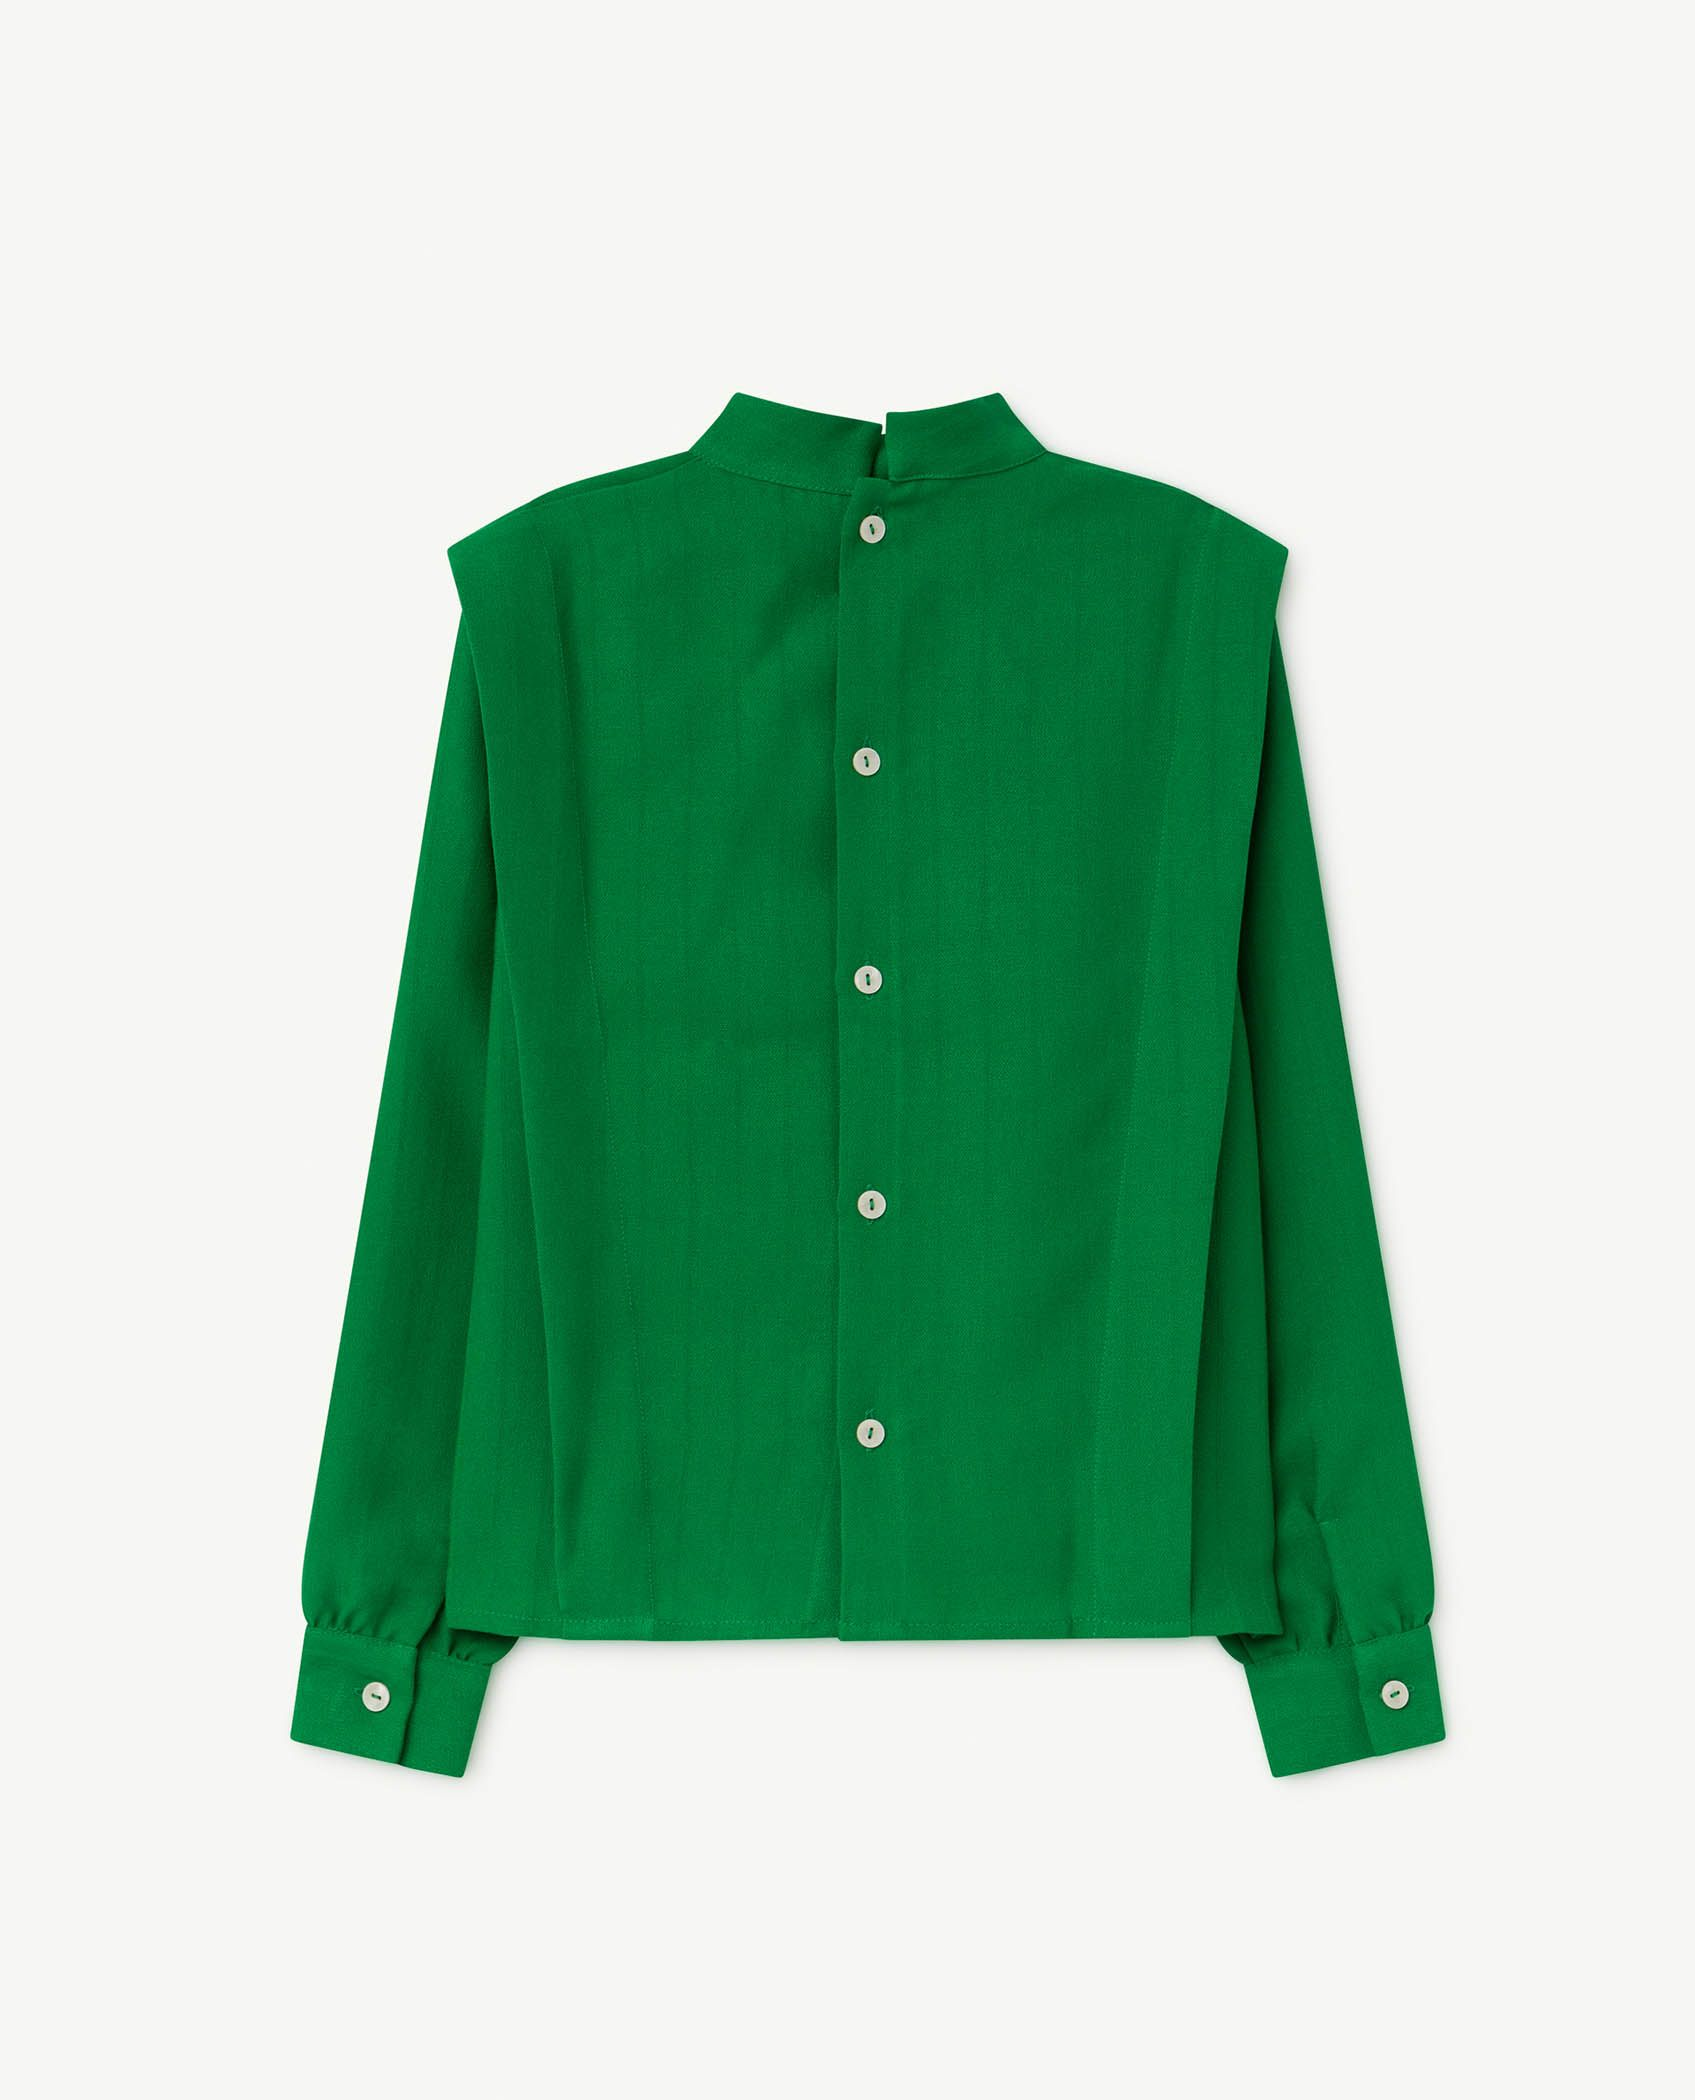 Green Grass Cuckoo Shirt img-2